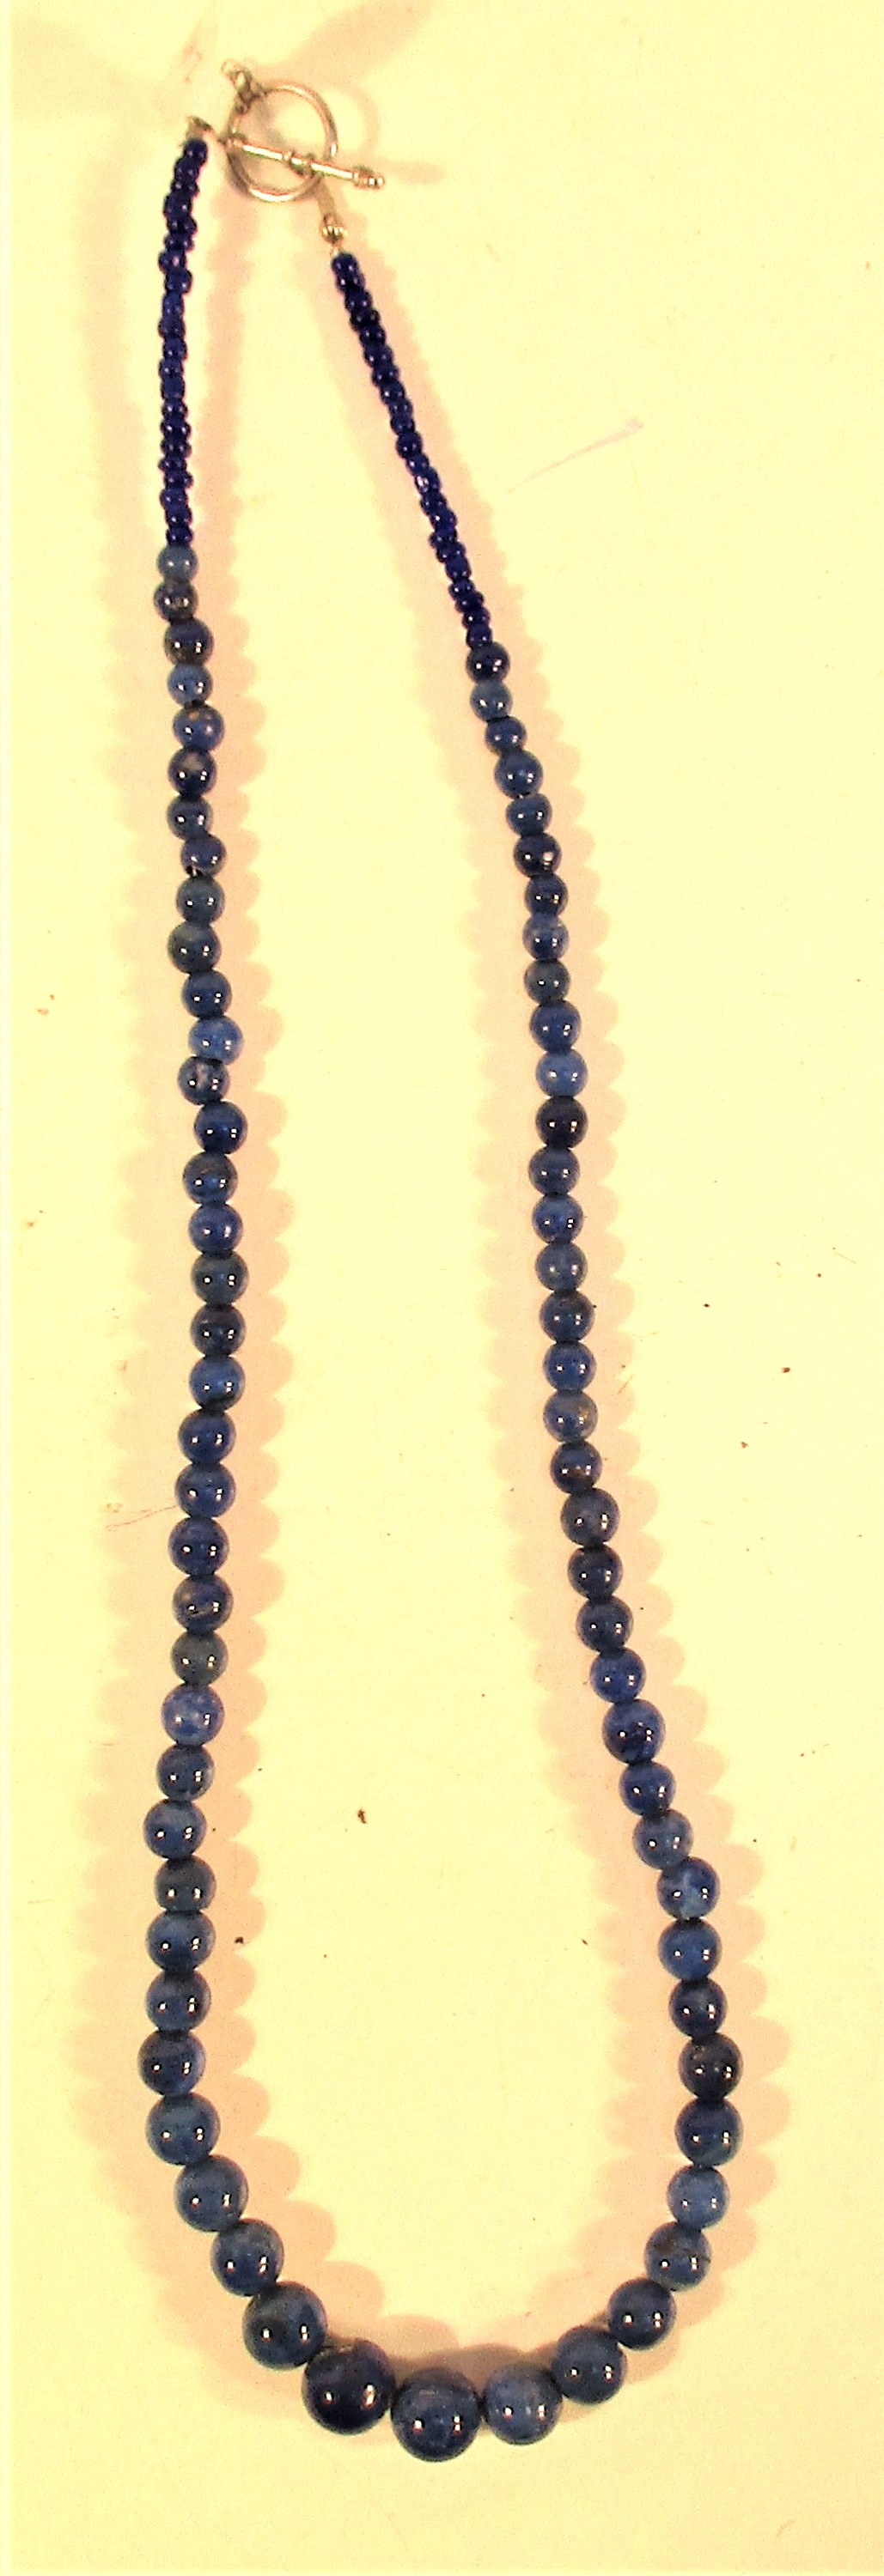 Necklace of graded lapis lazuli beads. Lapis lazuli is mined in a very remote corner of Afghanistan.